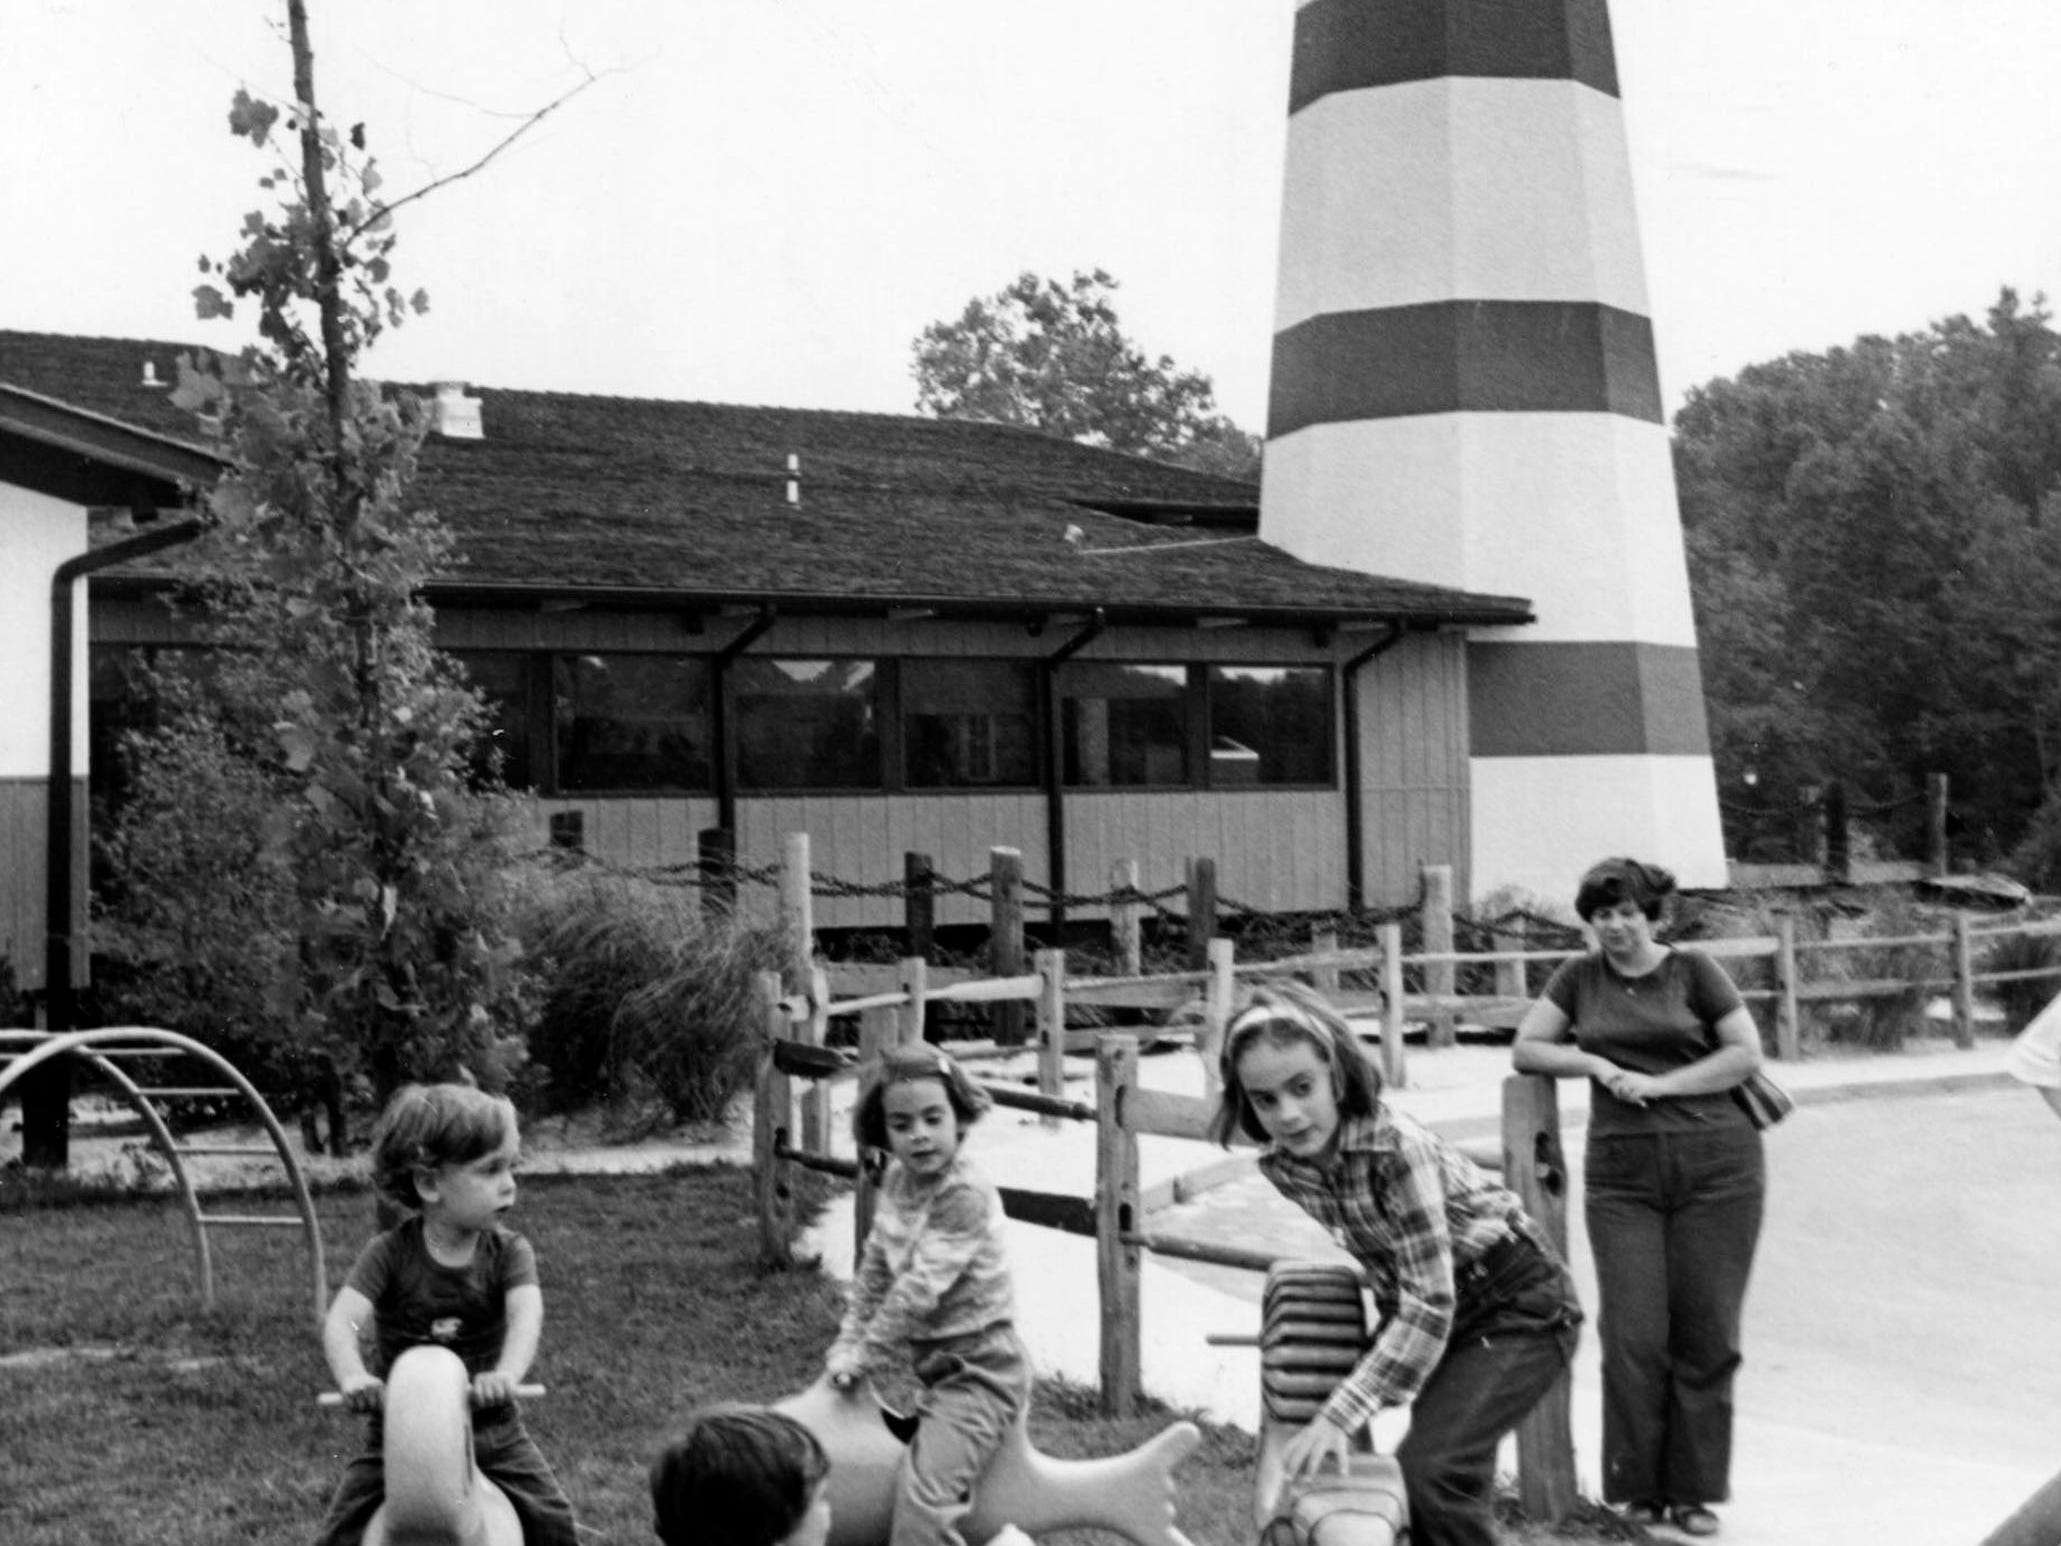 Children play outside at The Hungry Fisherman restaurant 1978 on Baum Dr.